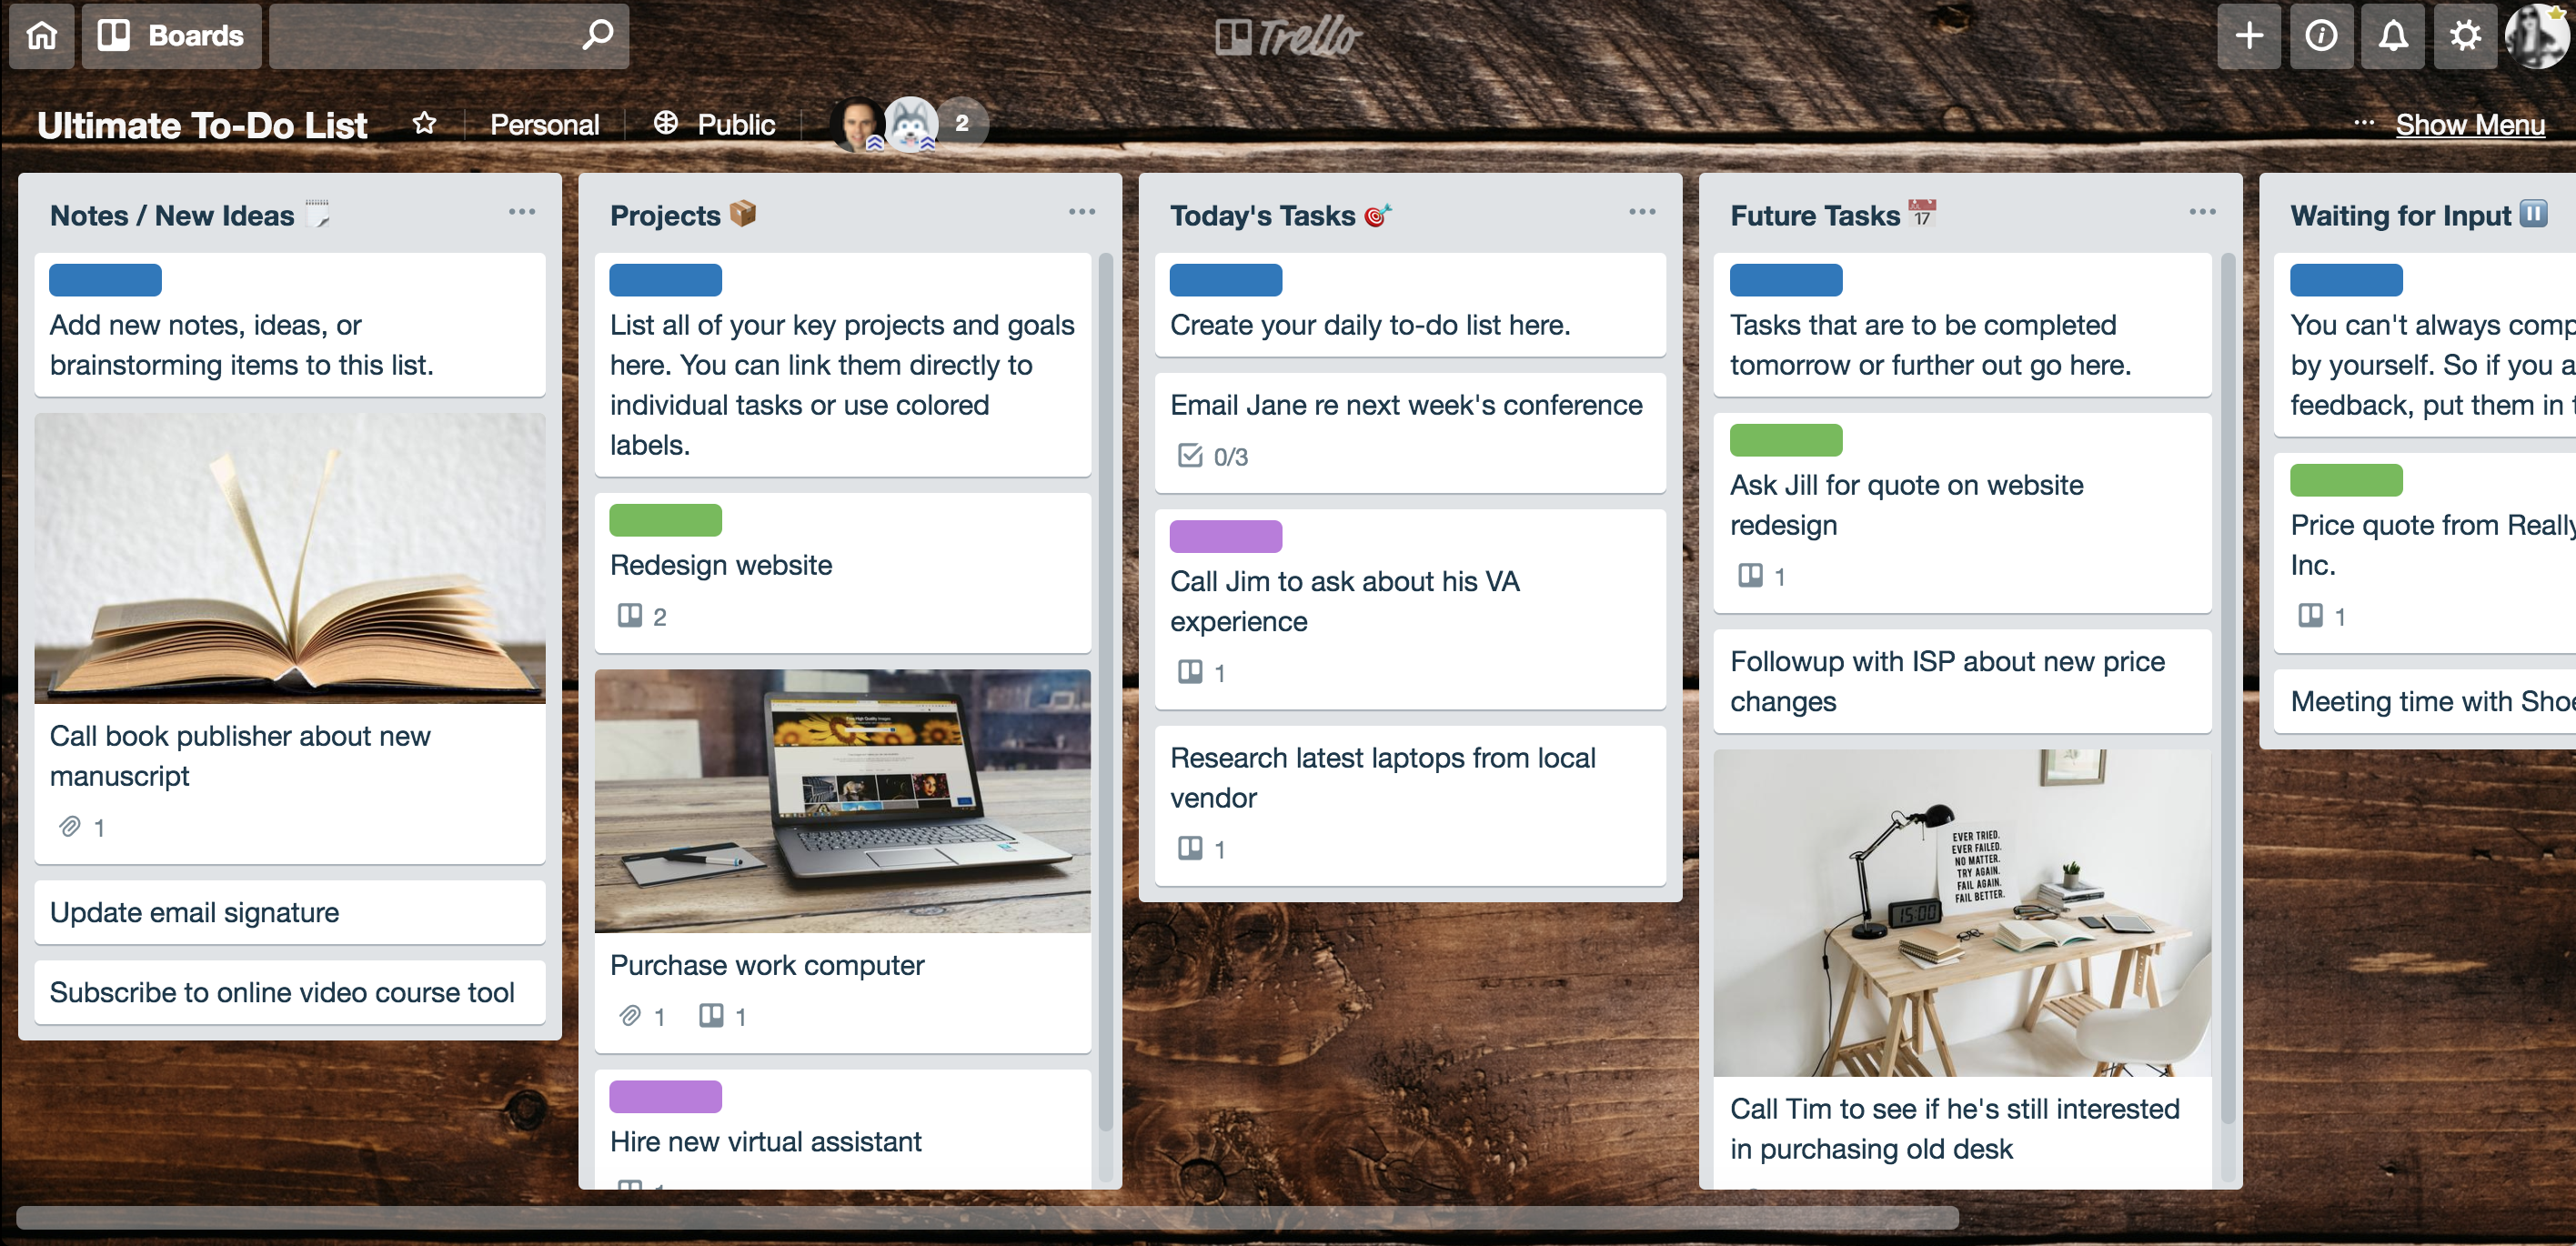 ultimate to do list trello board